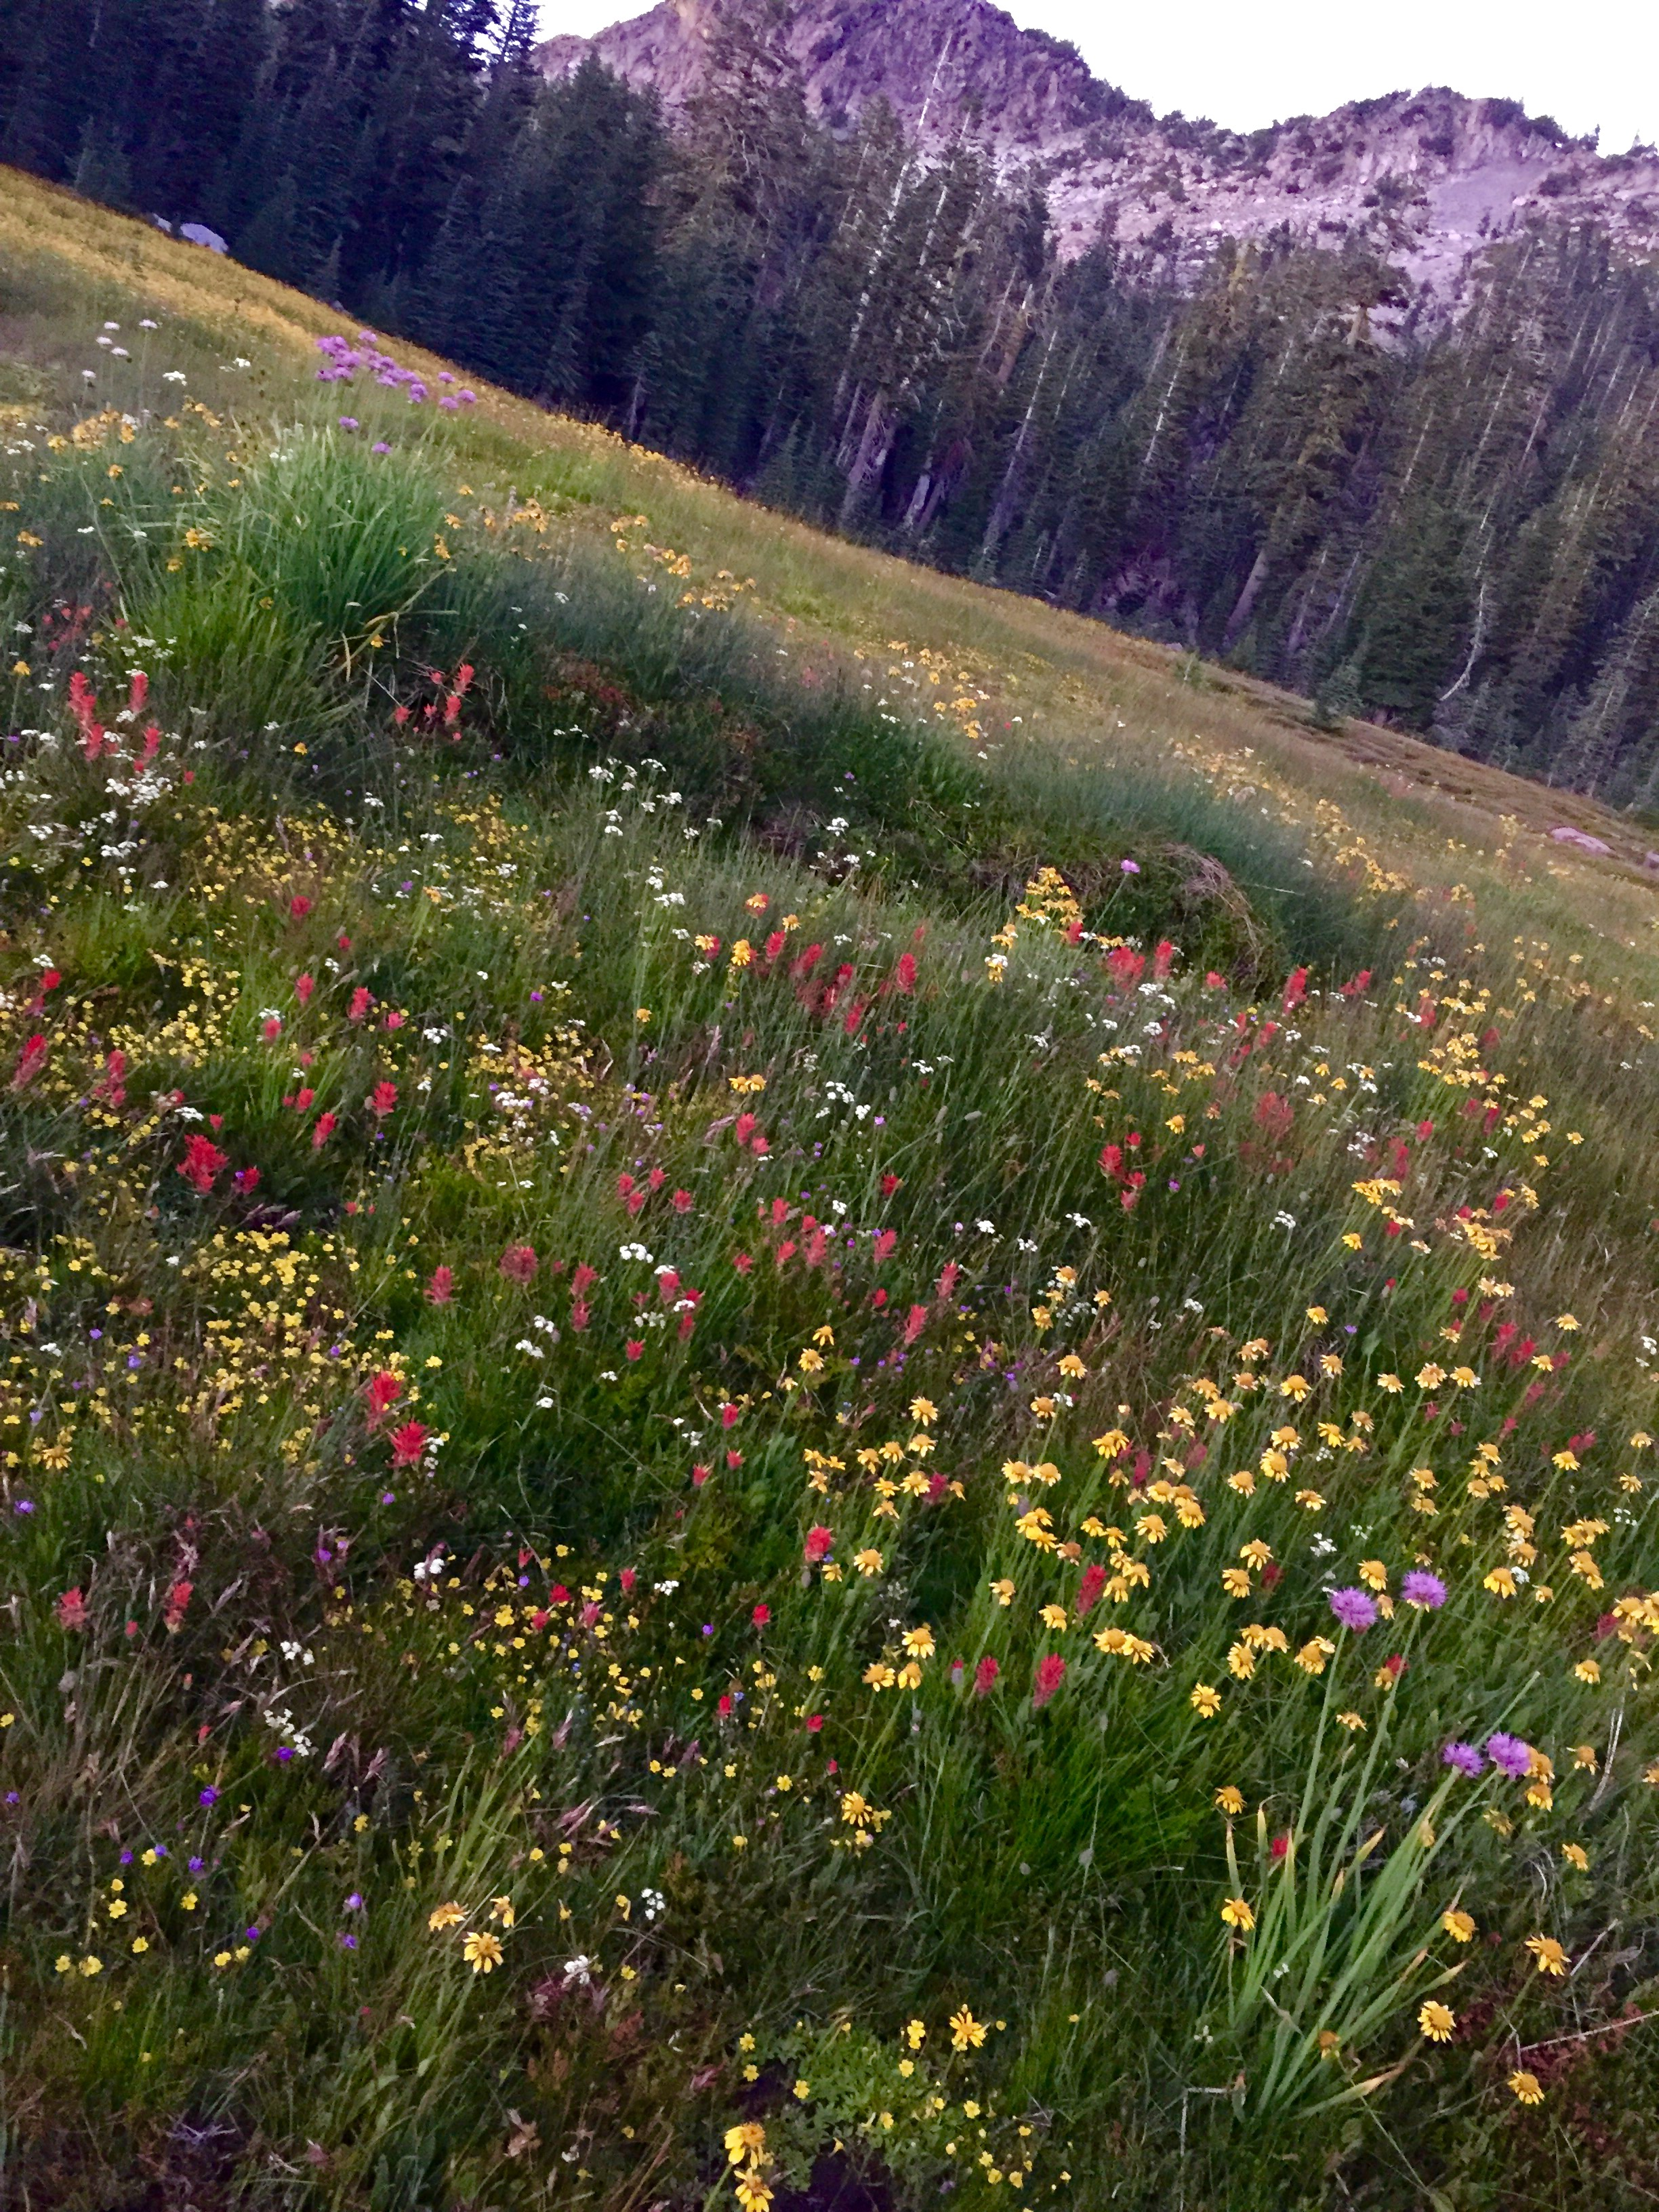 Mount Shasta Panther Meadow